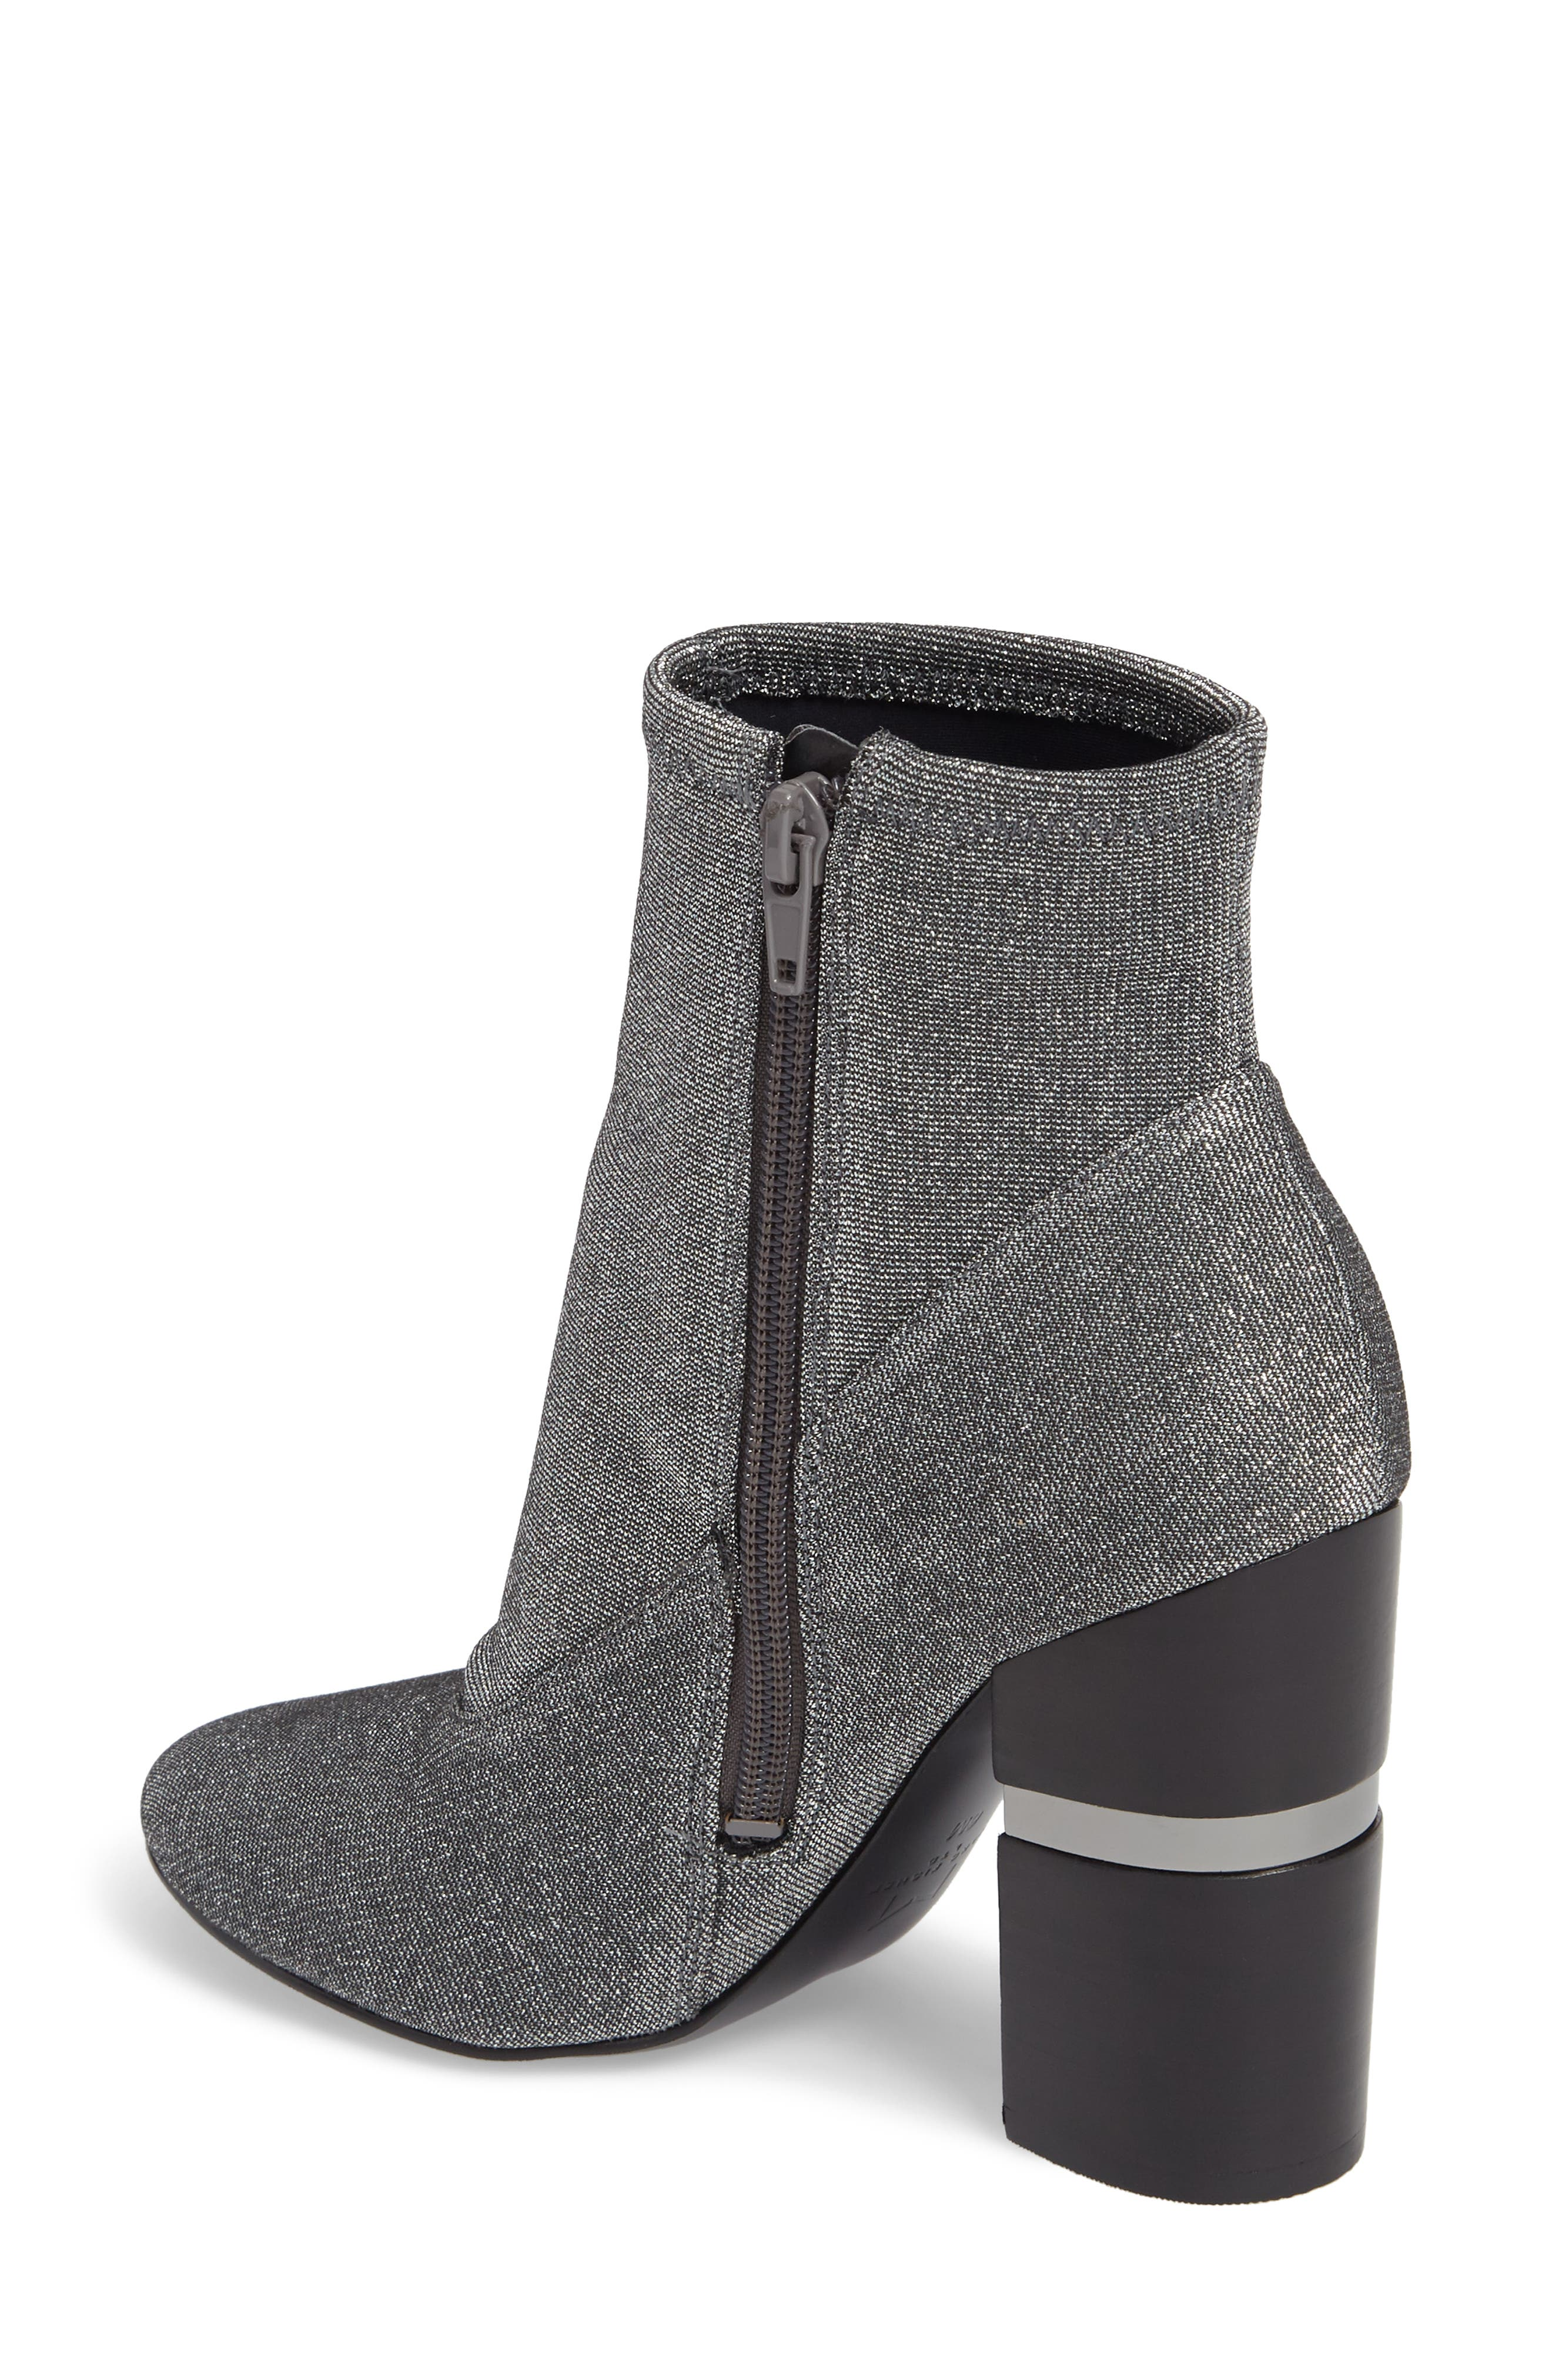 Padda Embellished Stretch Bootie,                             Alternate thumbnail 4, color,